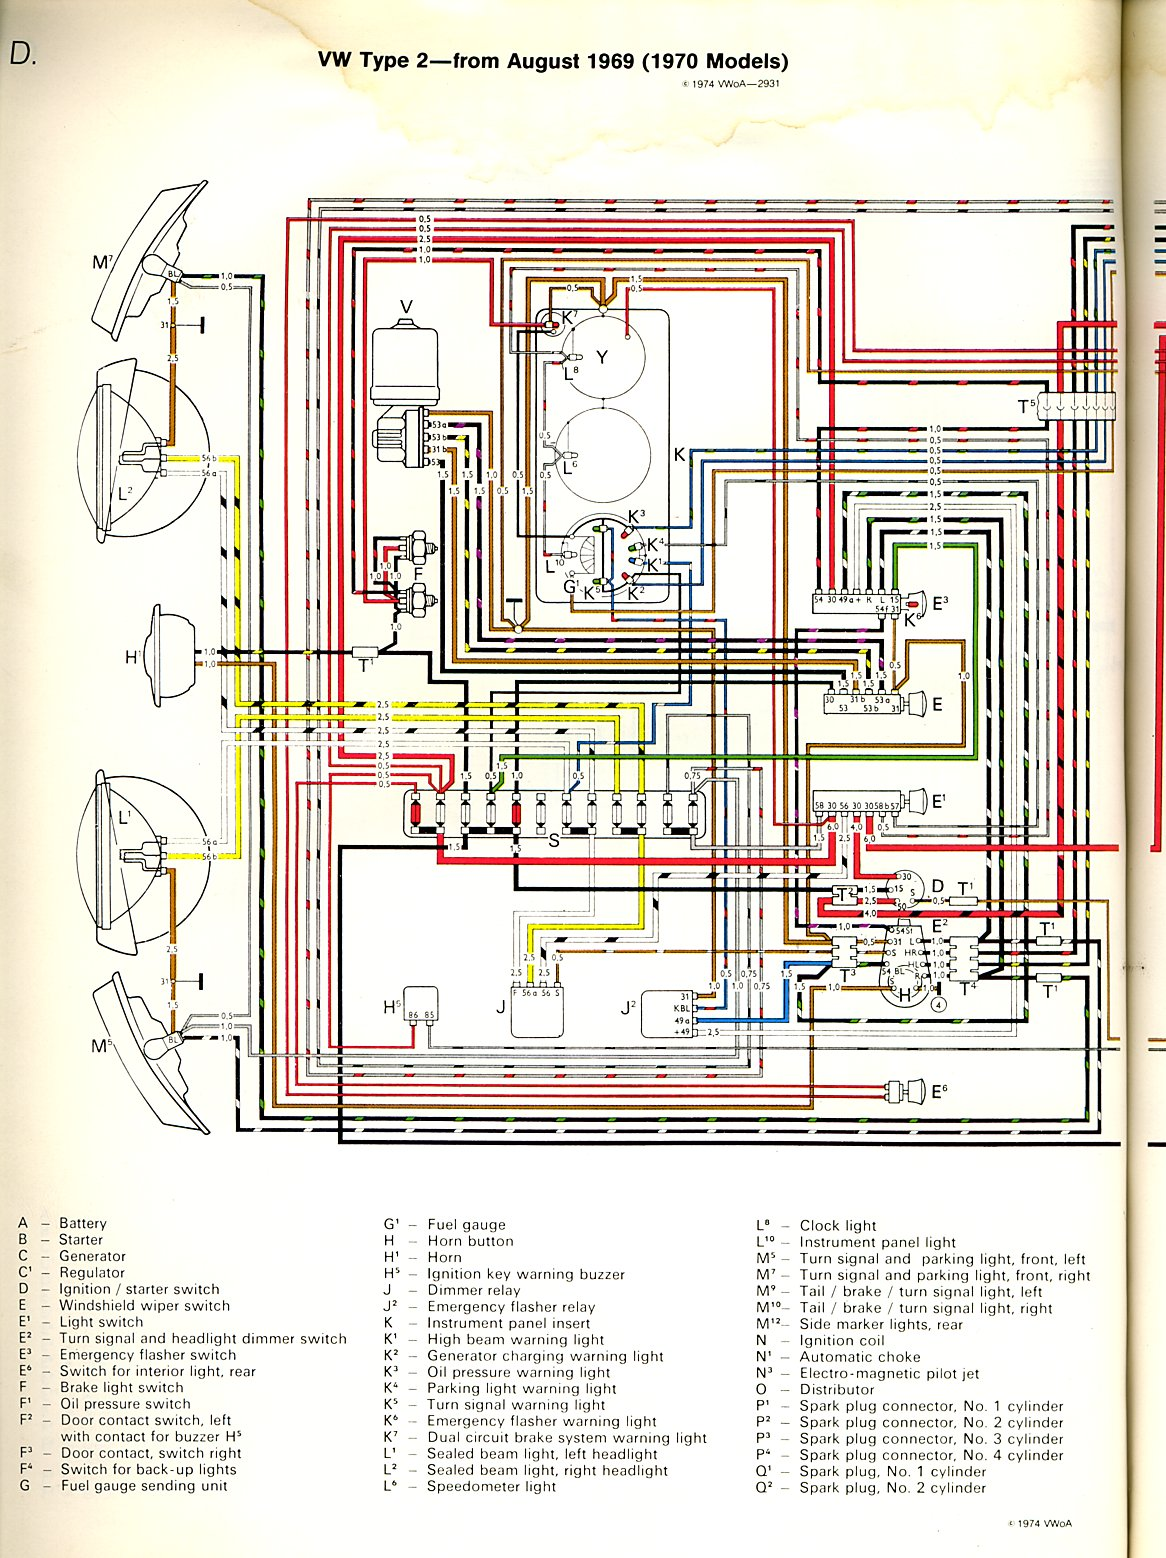 Type 2 Wiring Diagrams Spdt Relay Diagram Datsun